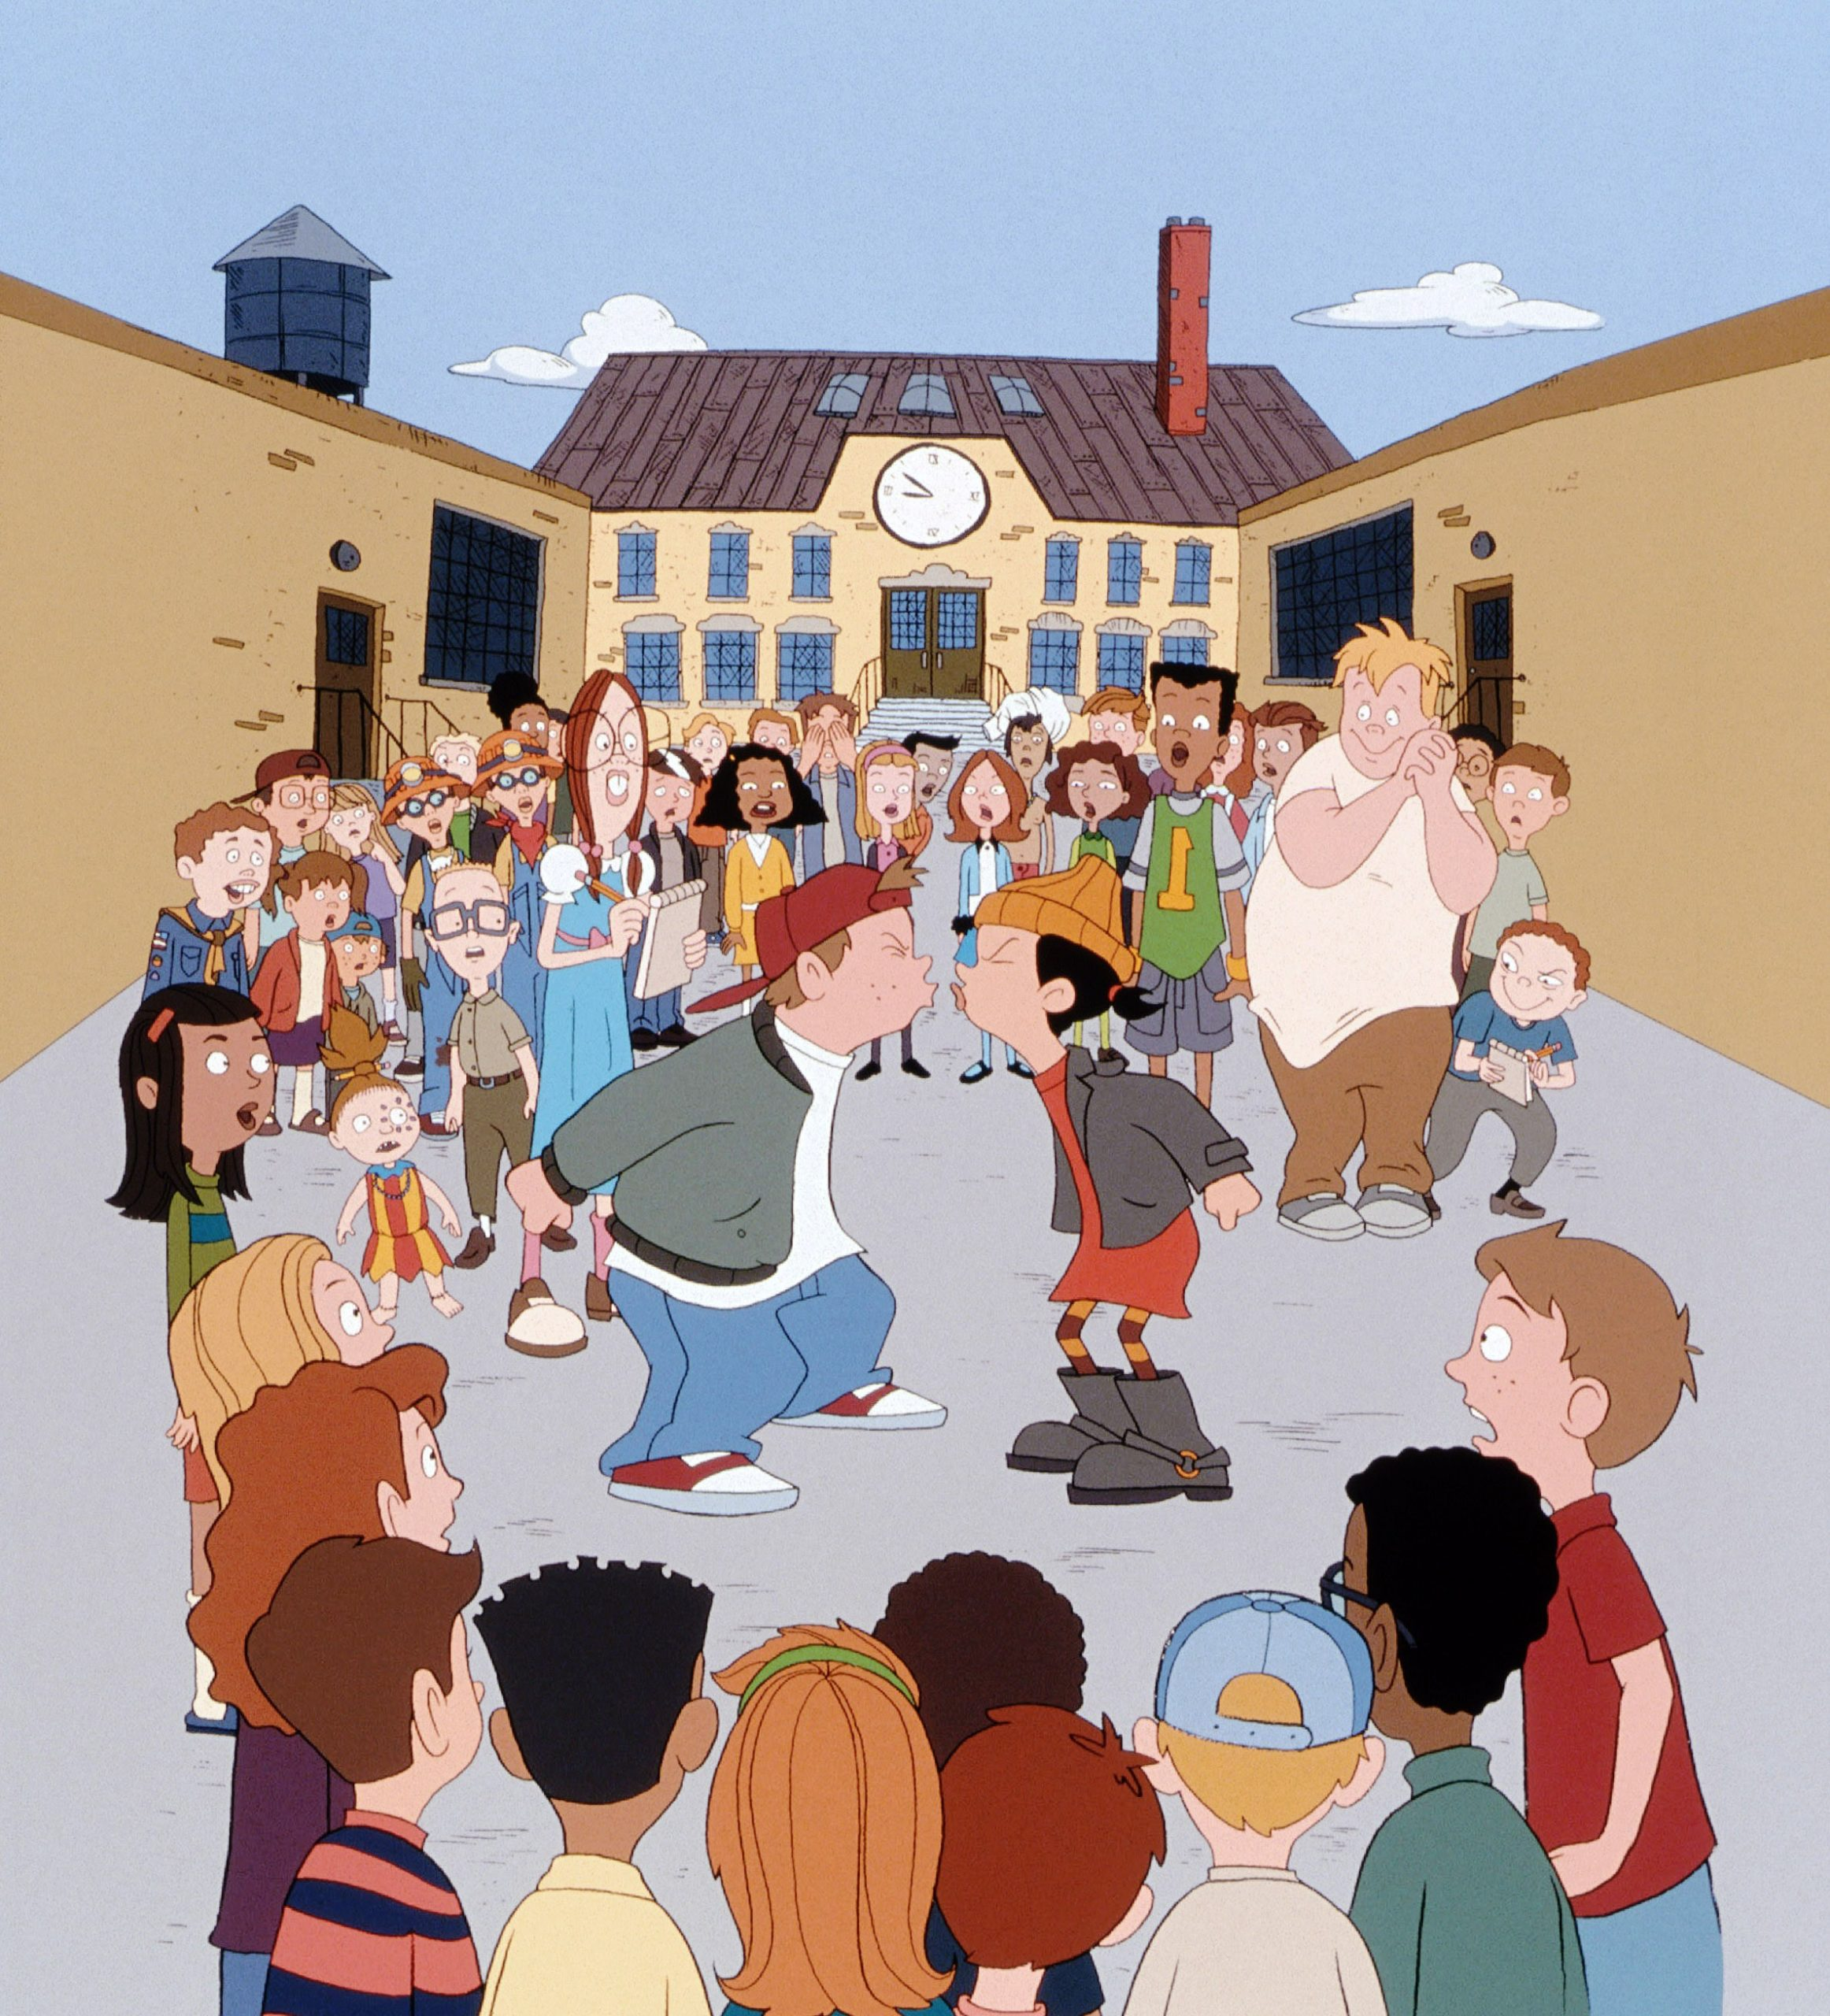 RECESS, T.J. Detweiler (center, left), Ashley Spinelli (center, right), 1997-2001. © Walt Disney Tel